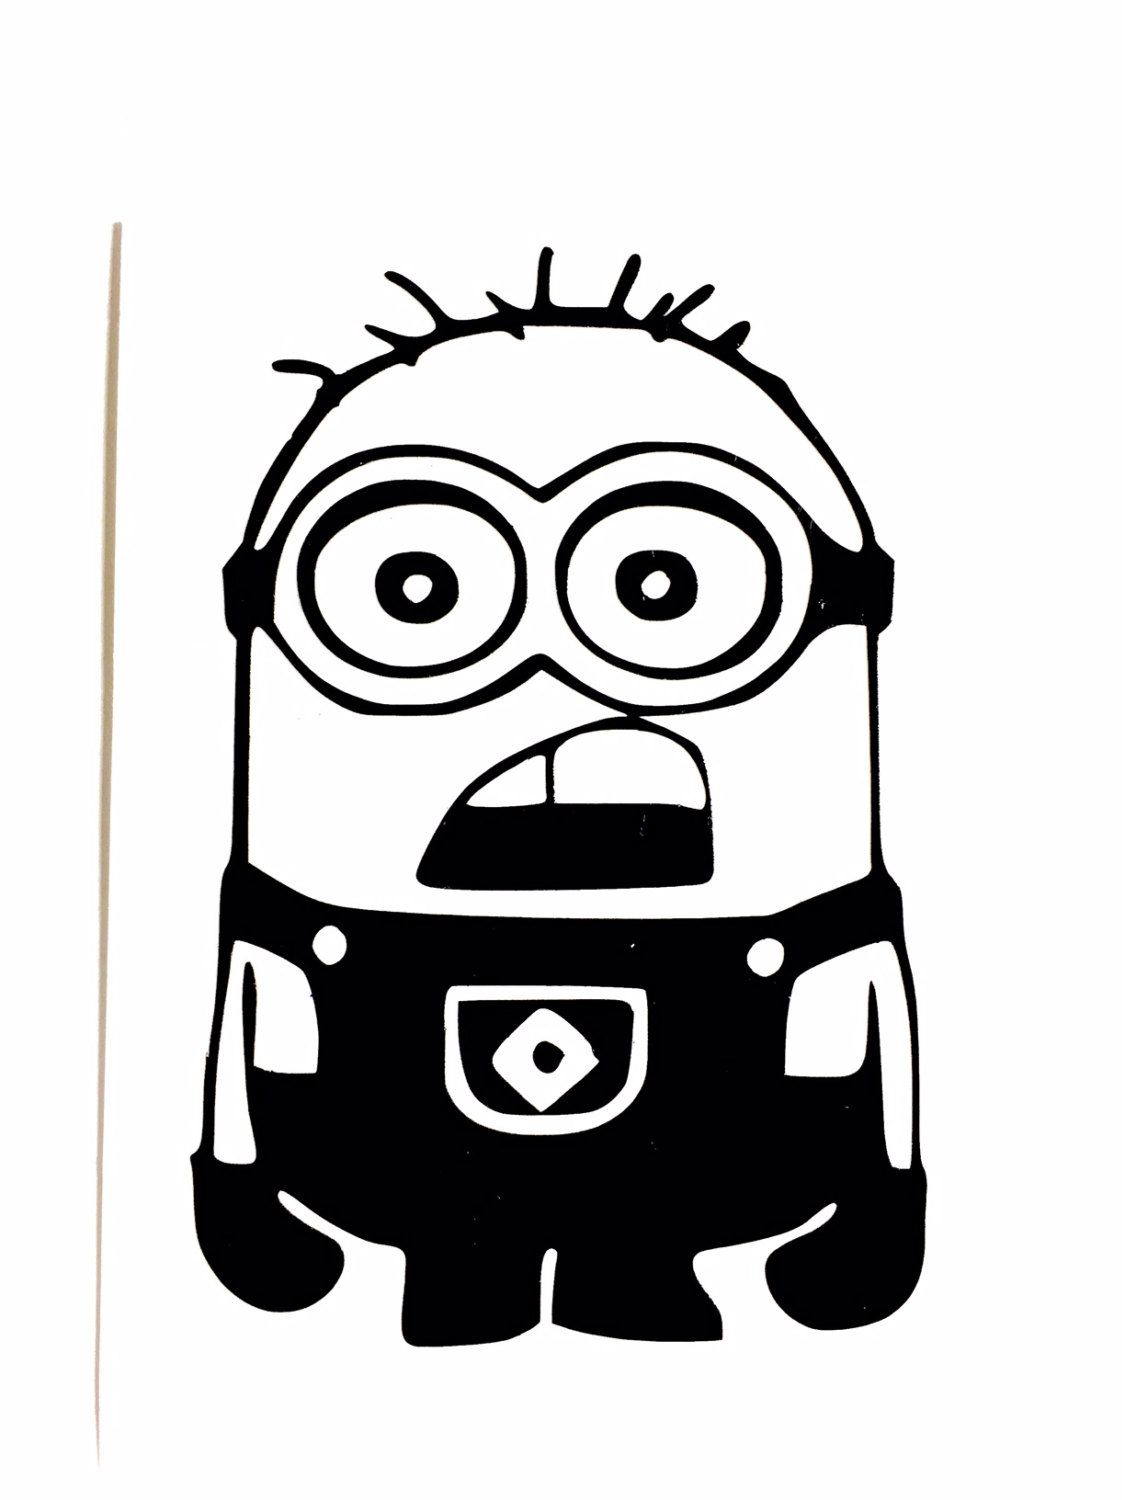 Diy minion vinyl decal despicable me decal cartoon decal minion jerry car window decal laptop decal tablet decal drinkware decal by vinylmeethis on